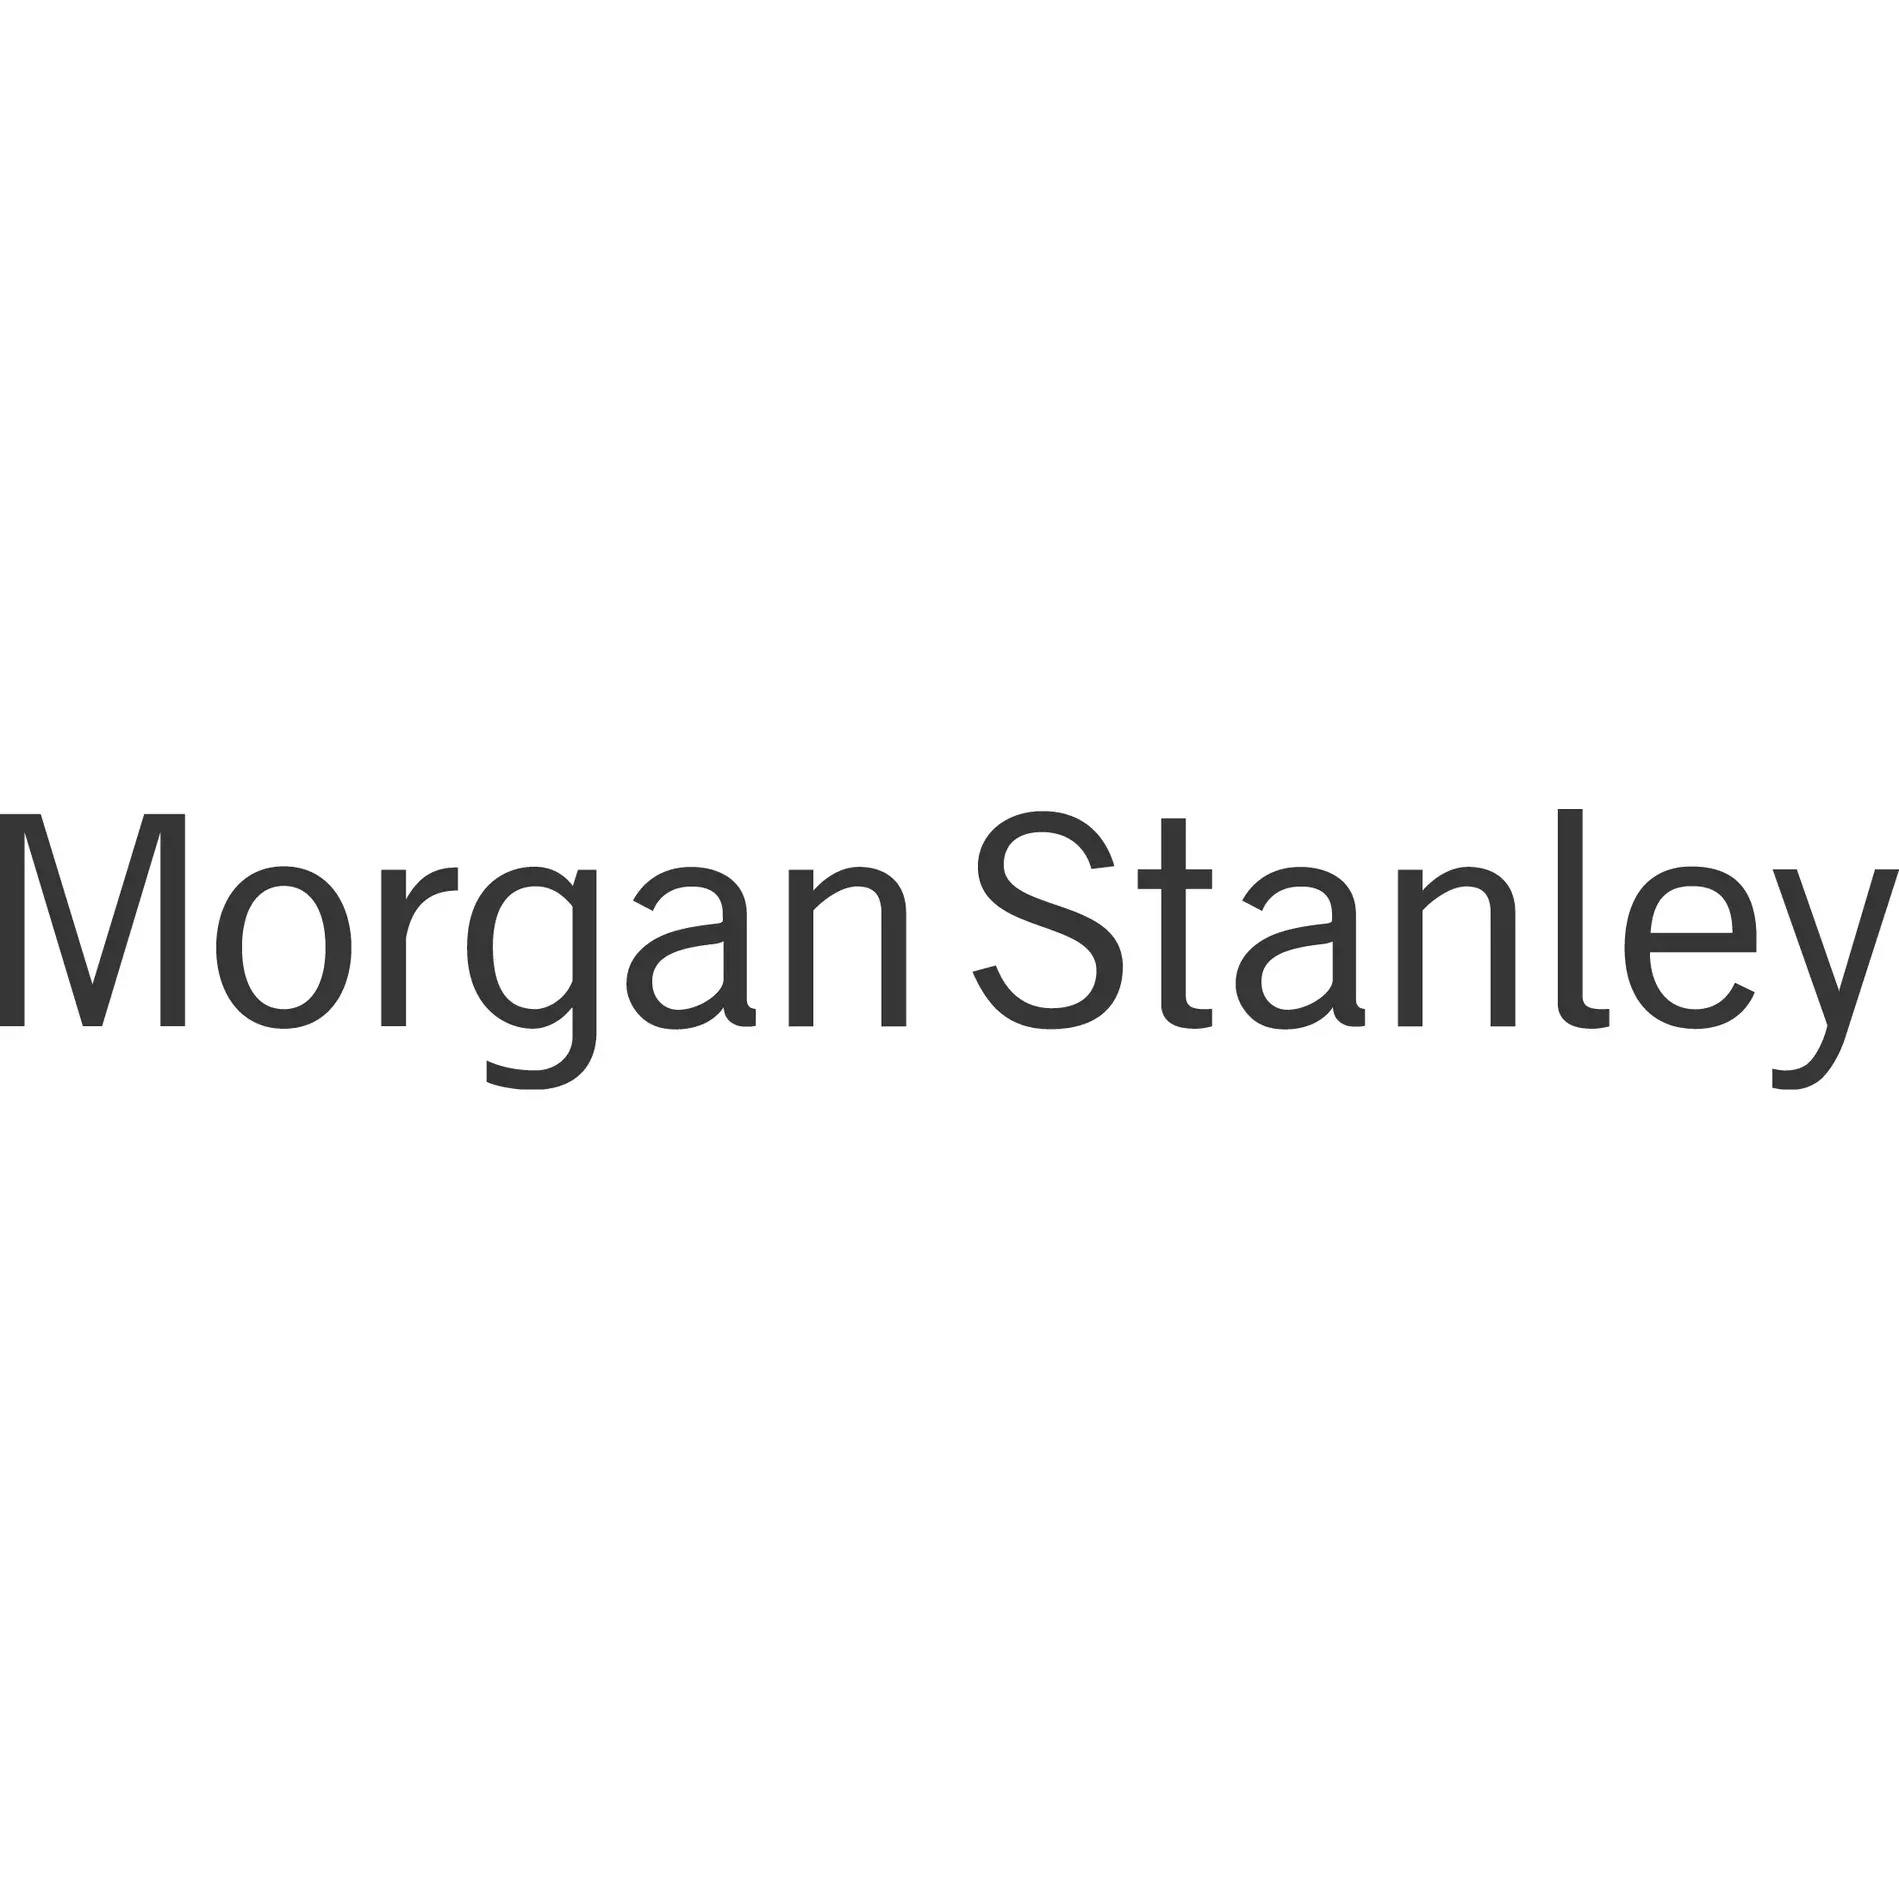 Daniel Bradley - Morgan Stanley | Financial Advisor in Atlanta,Georgia